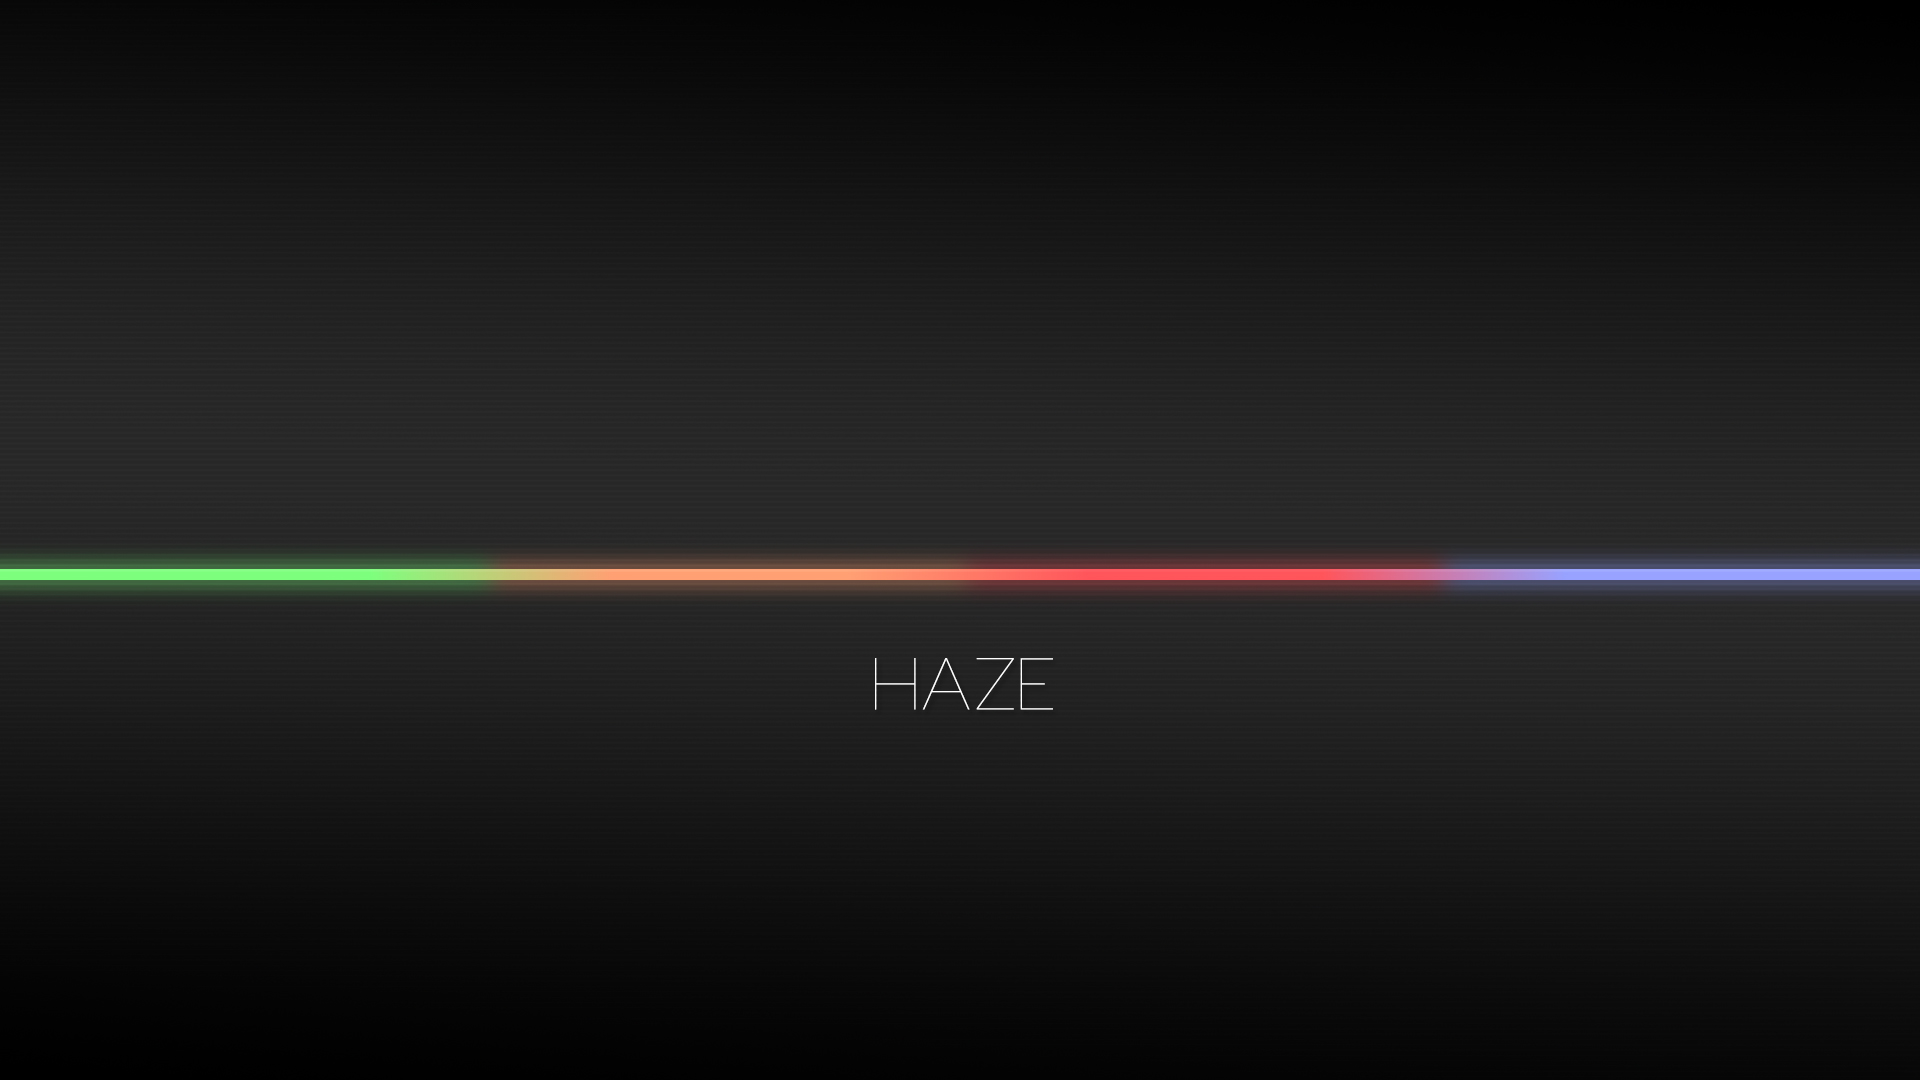 Haze by HeisQ